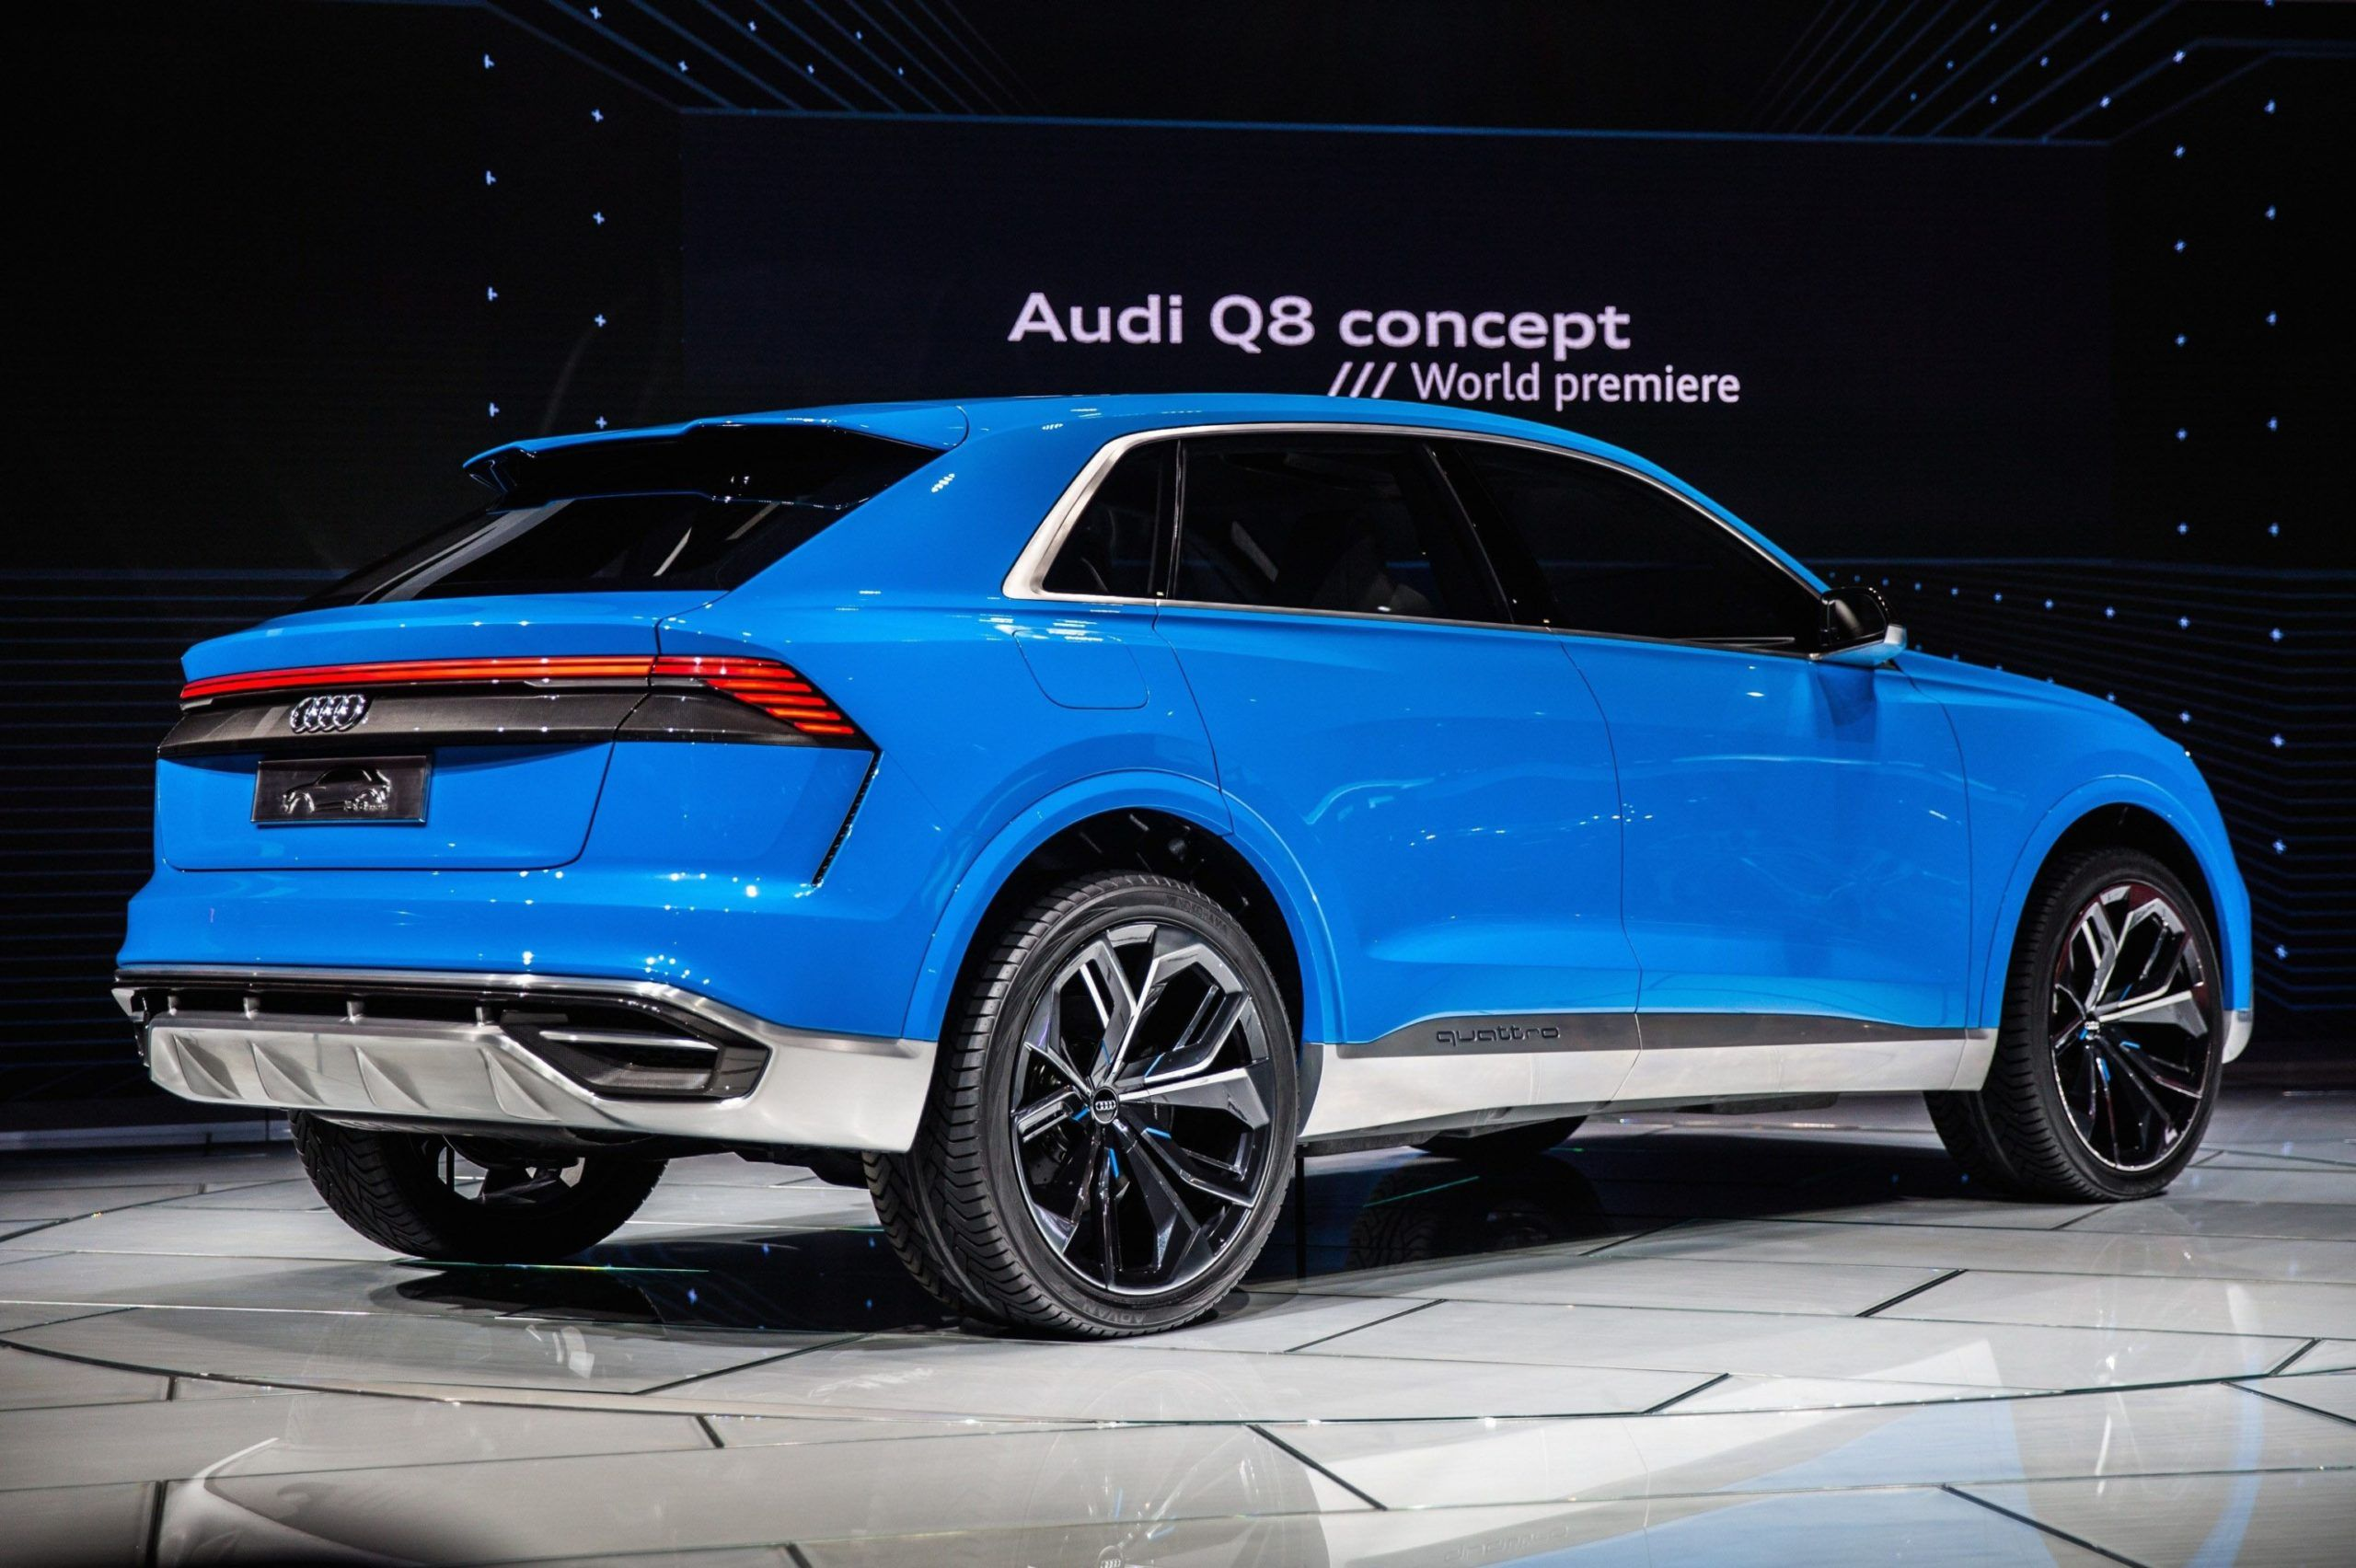 One Checklist That You Should Keep In Mind Before Attending 2021 Audi Q9 Design